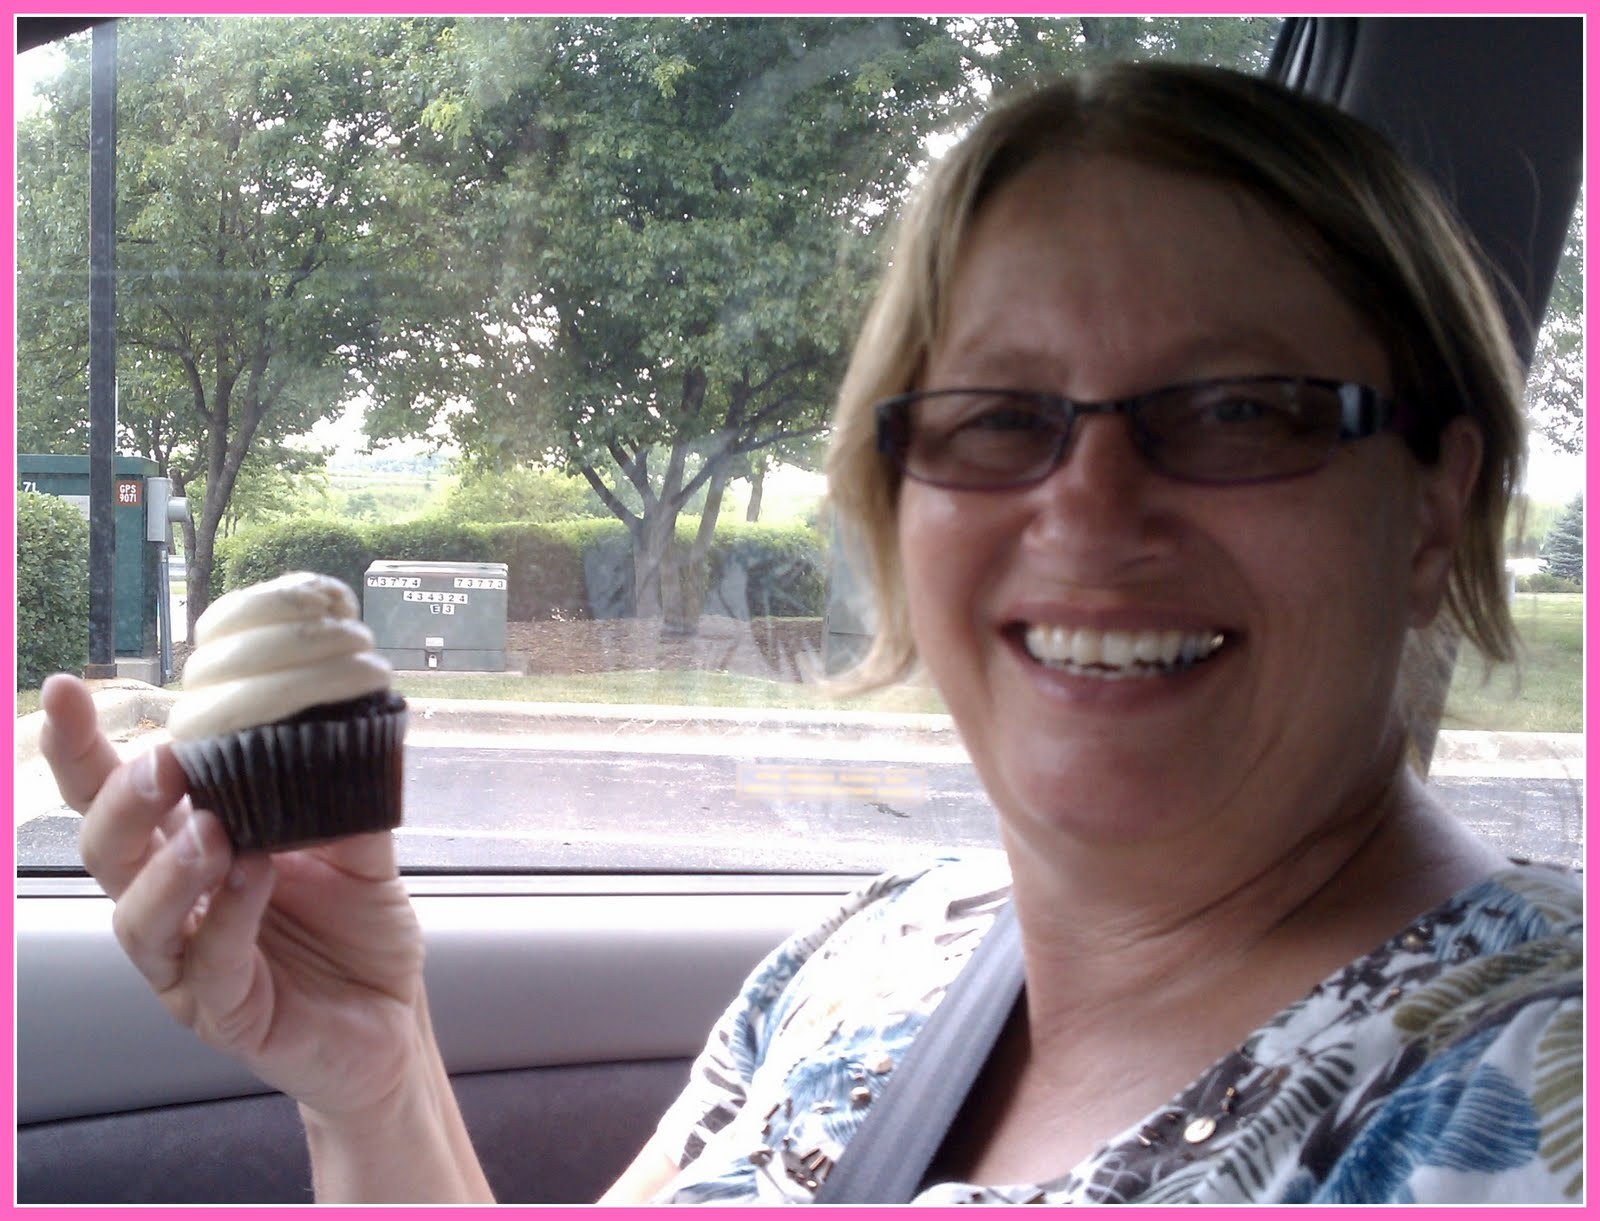 flirty cupcakes facebook I came across a sweets girl on facebook way back since 2010 flirty cupcakes truck 78 reviews my favorites are the red velvet and mc dreamy.